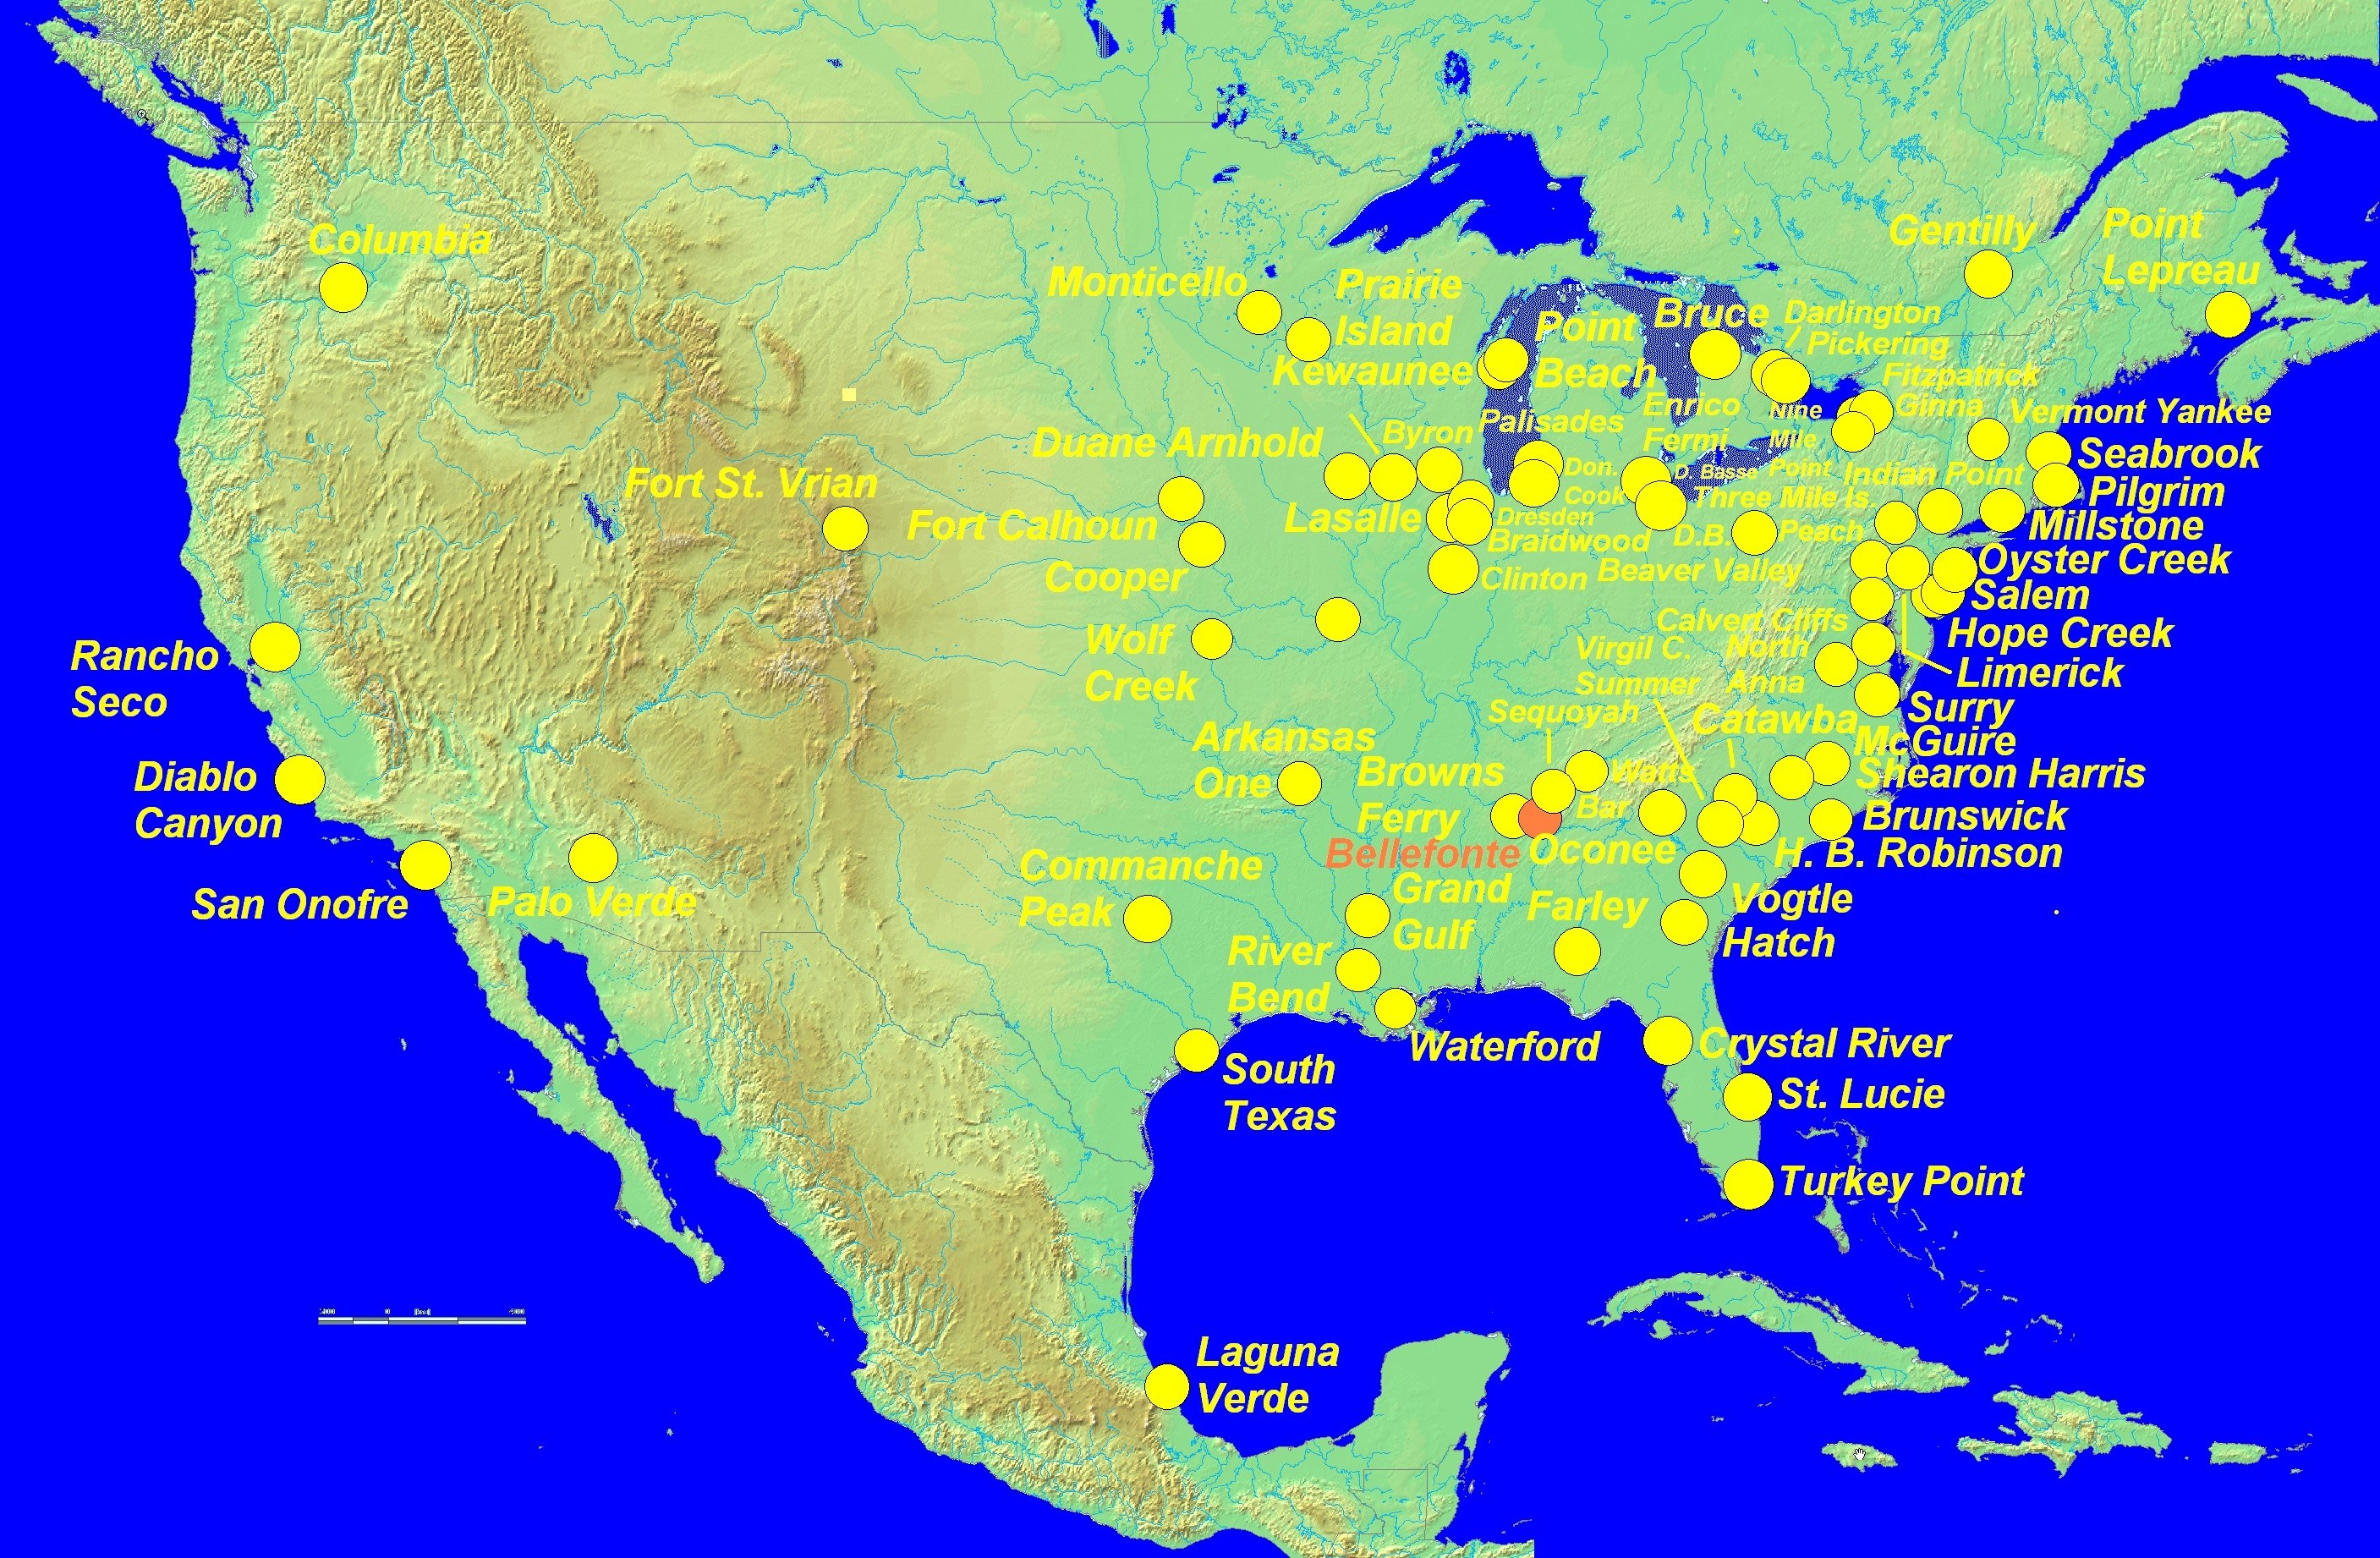 Map Nuclear Power Plants In Us North America Luxury Map Nuclear - Nuclear Power Plants In Texas Map